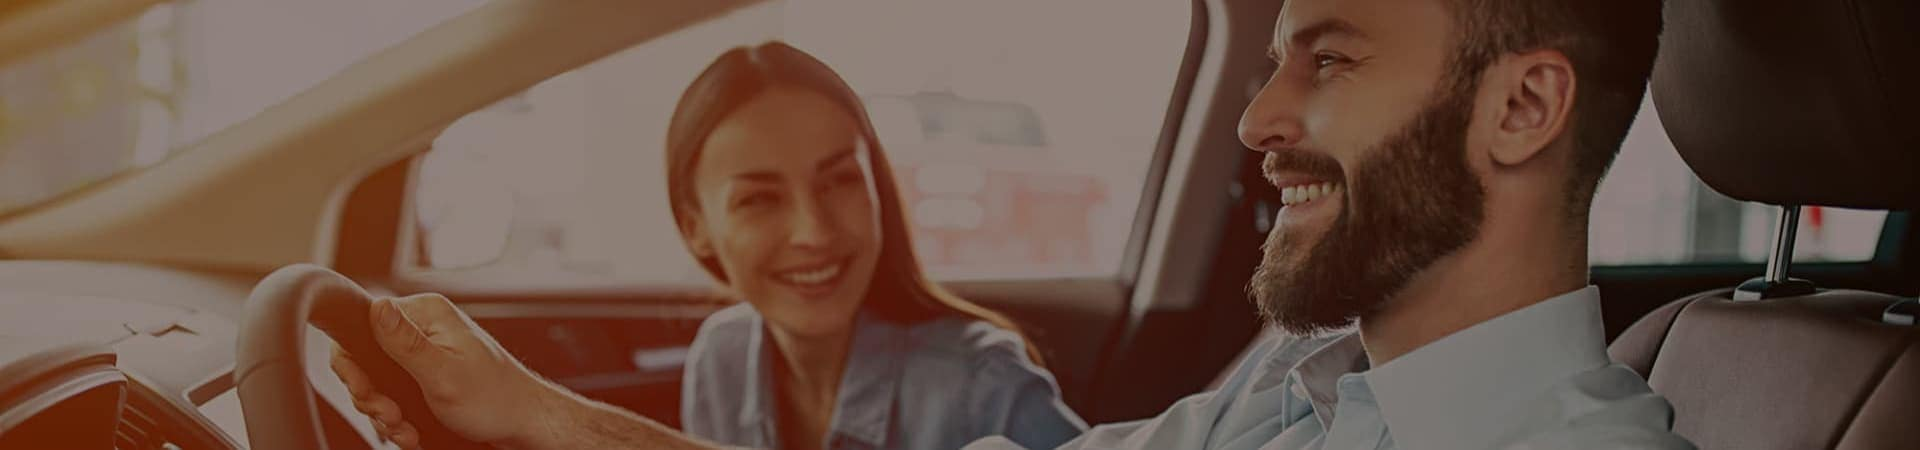 Woman in passenger seat smiling while looking at man driving the vehicle